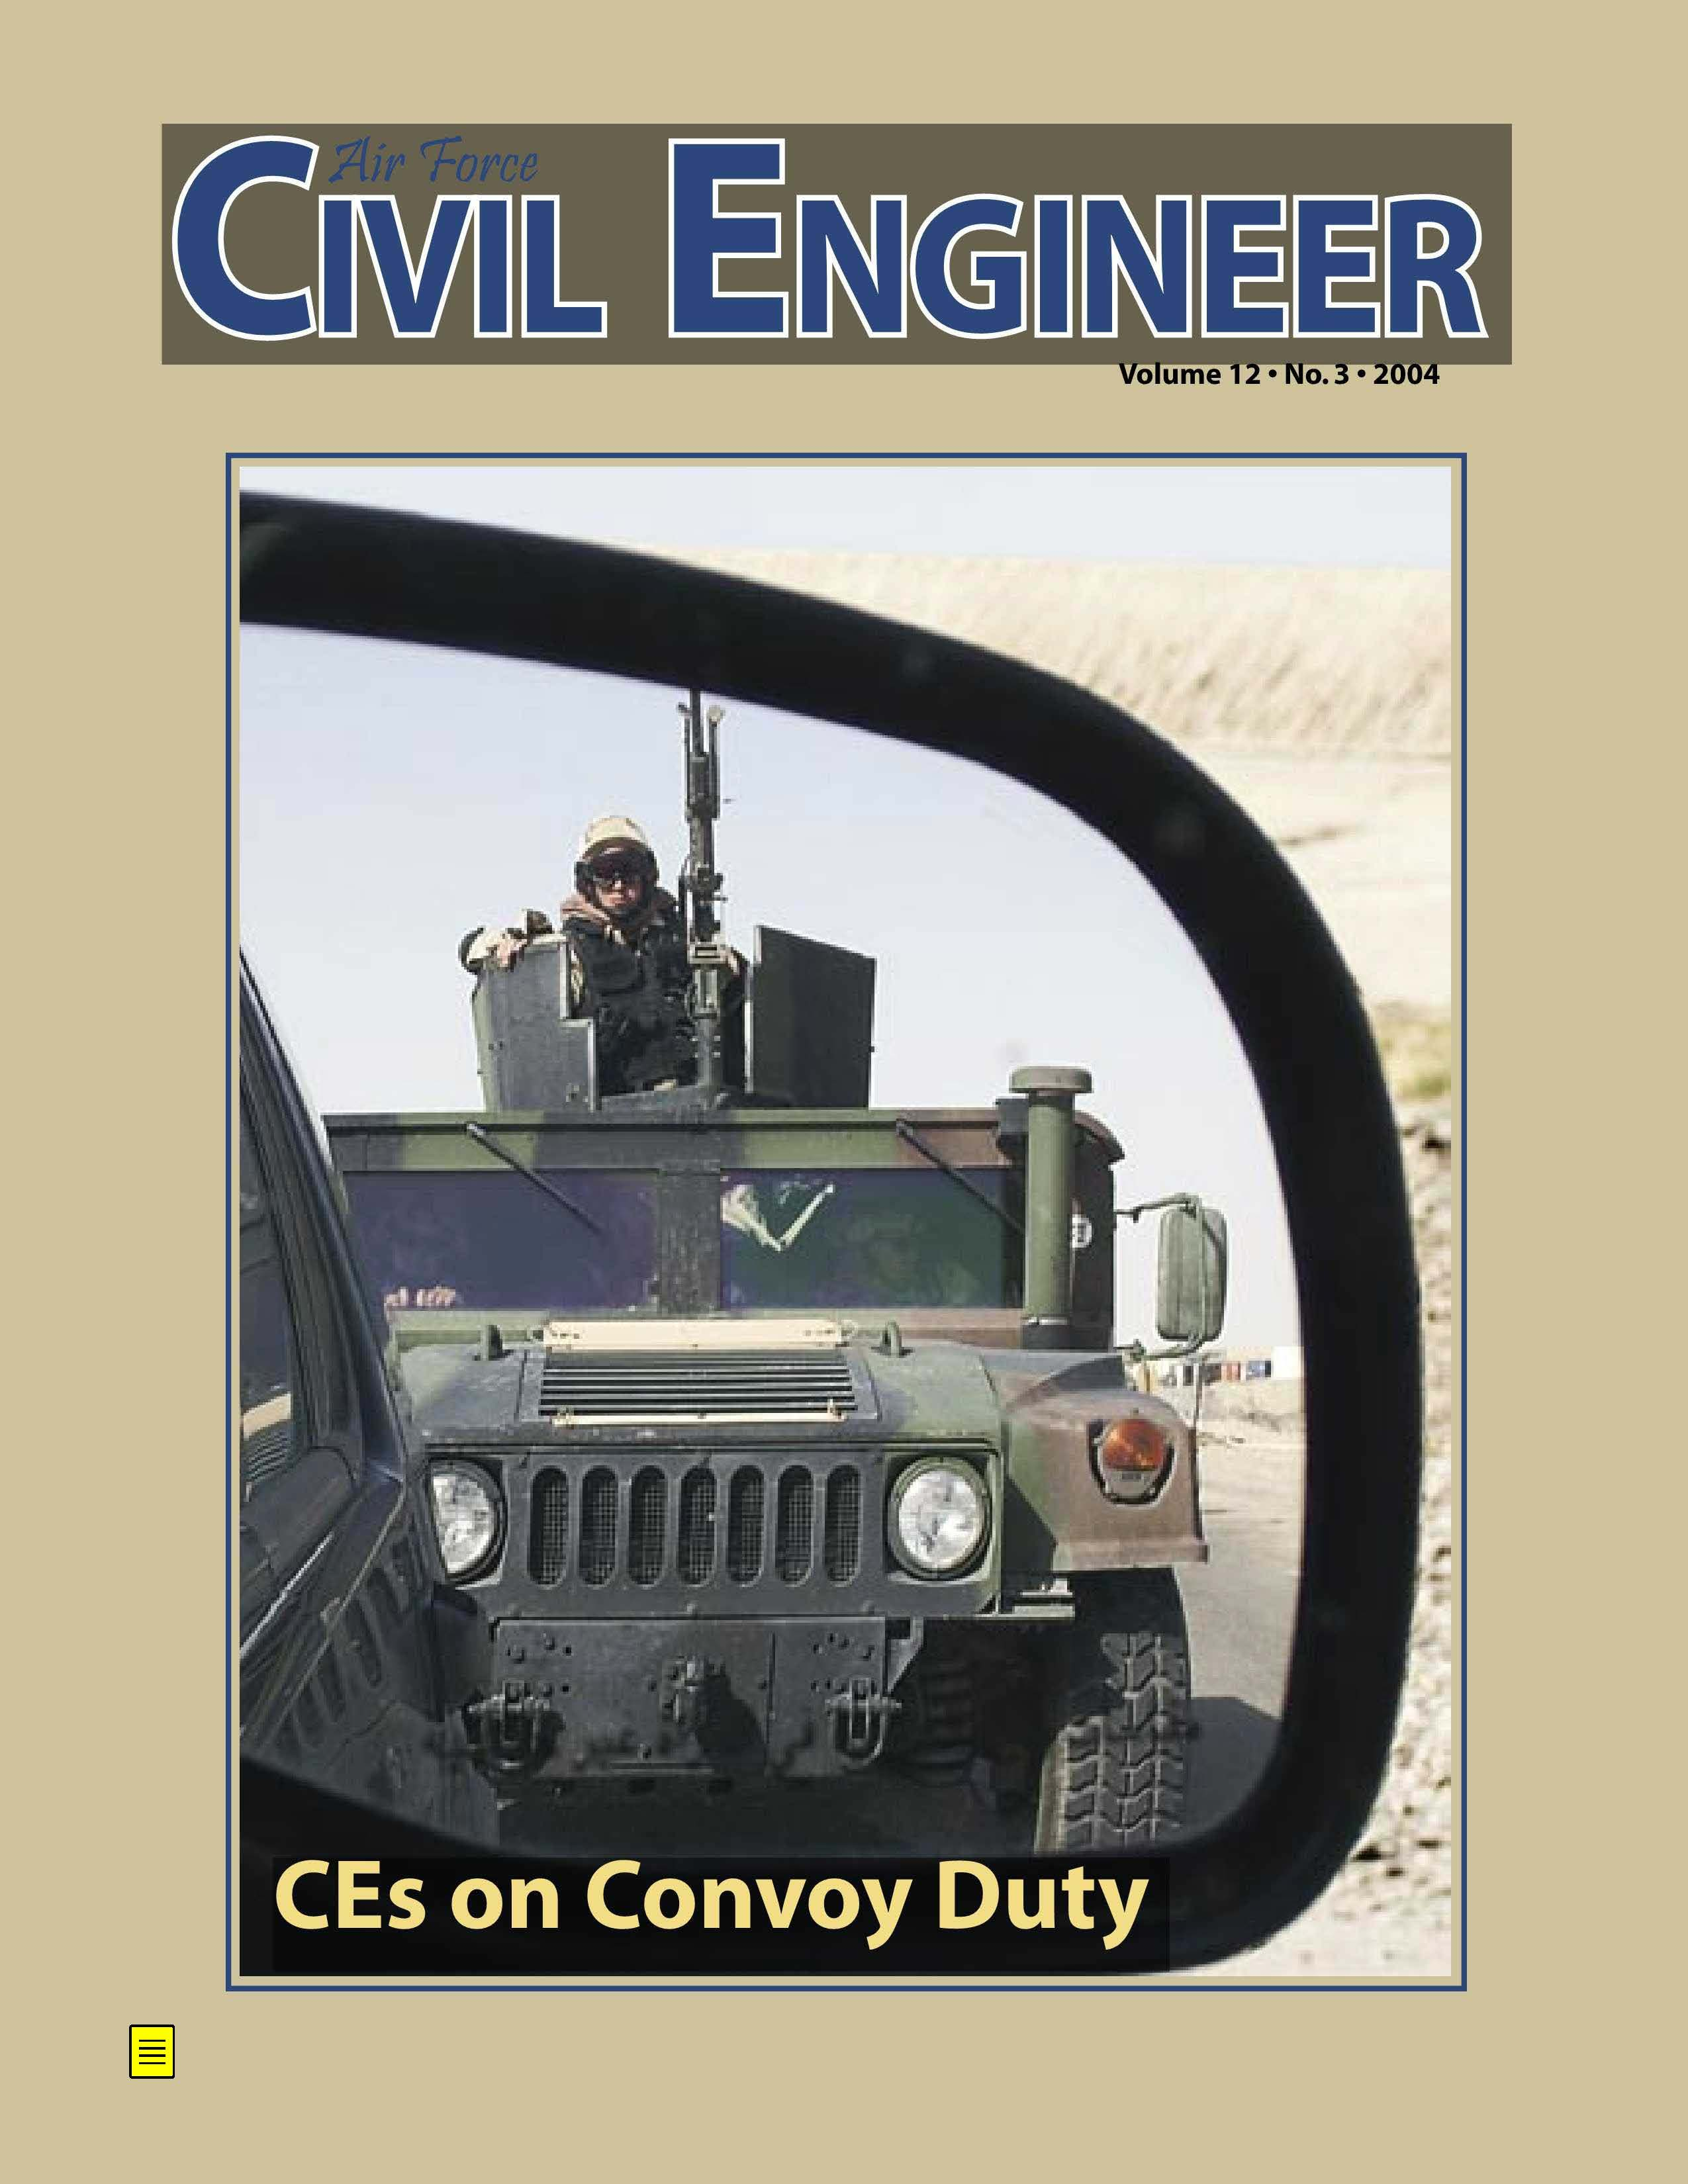 Fall 2004, CEs on Convoy Duty